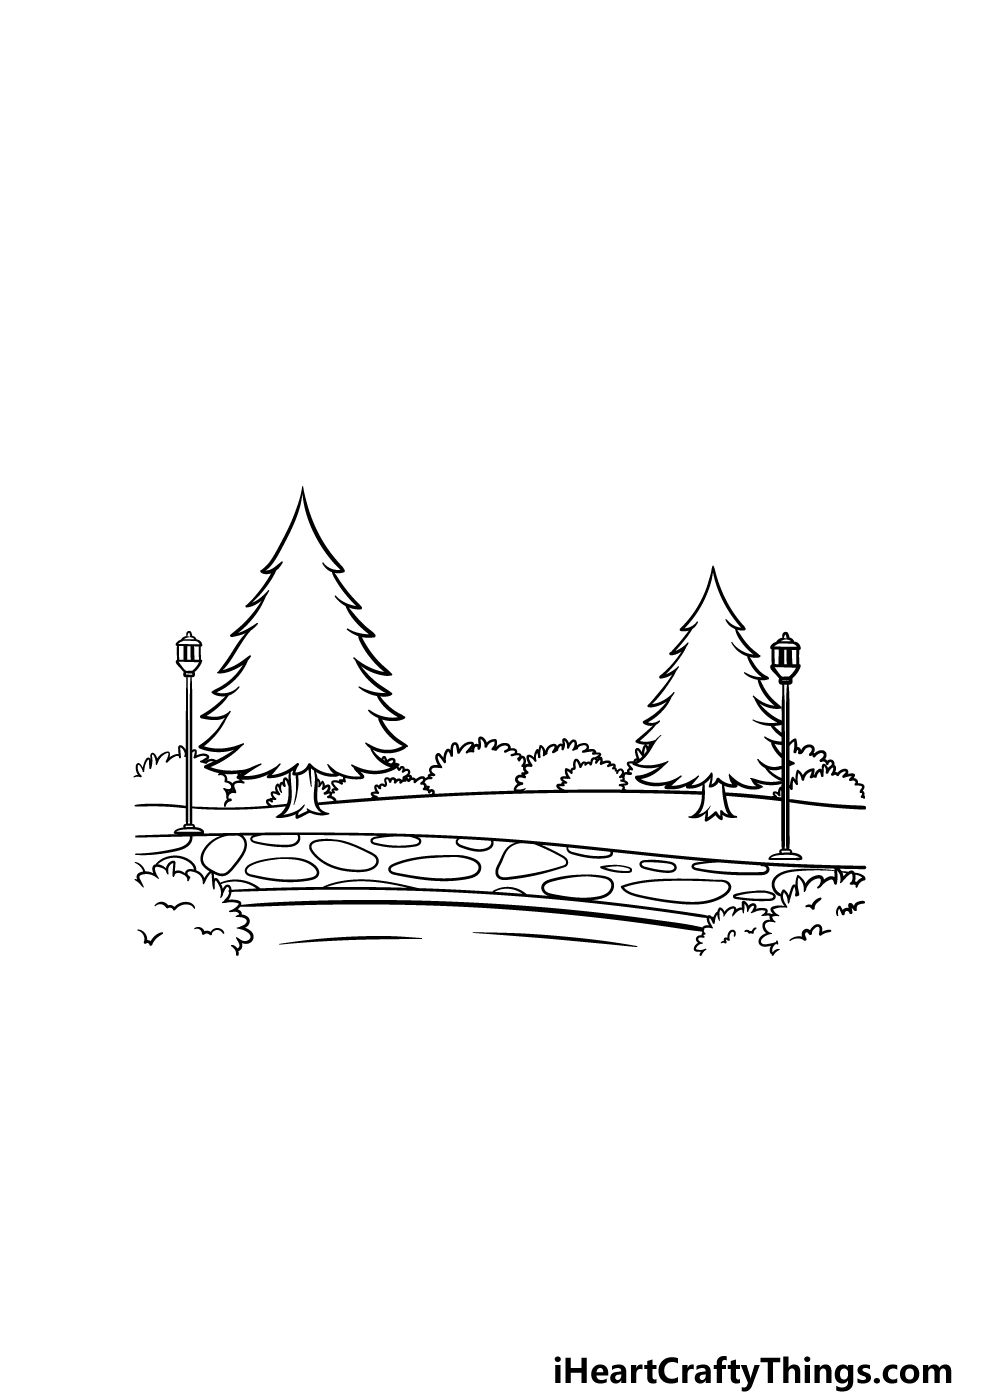 drawing a park step 4